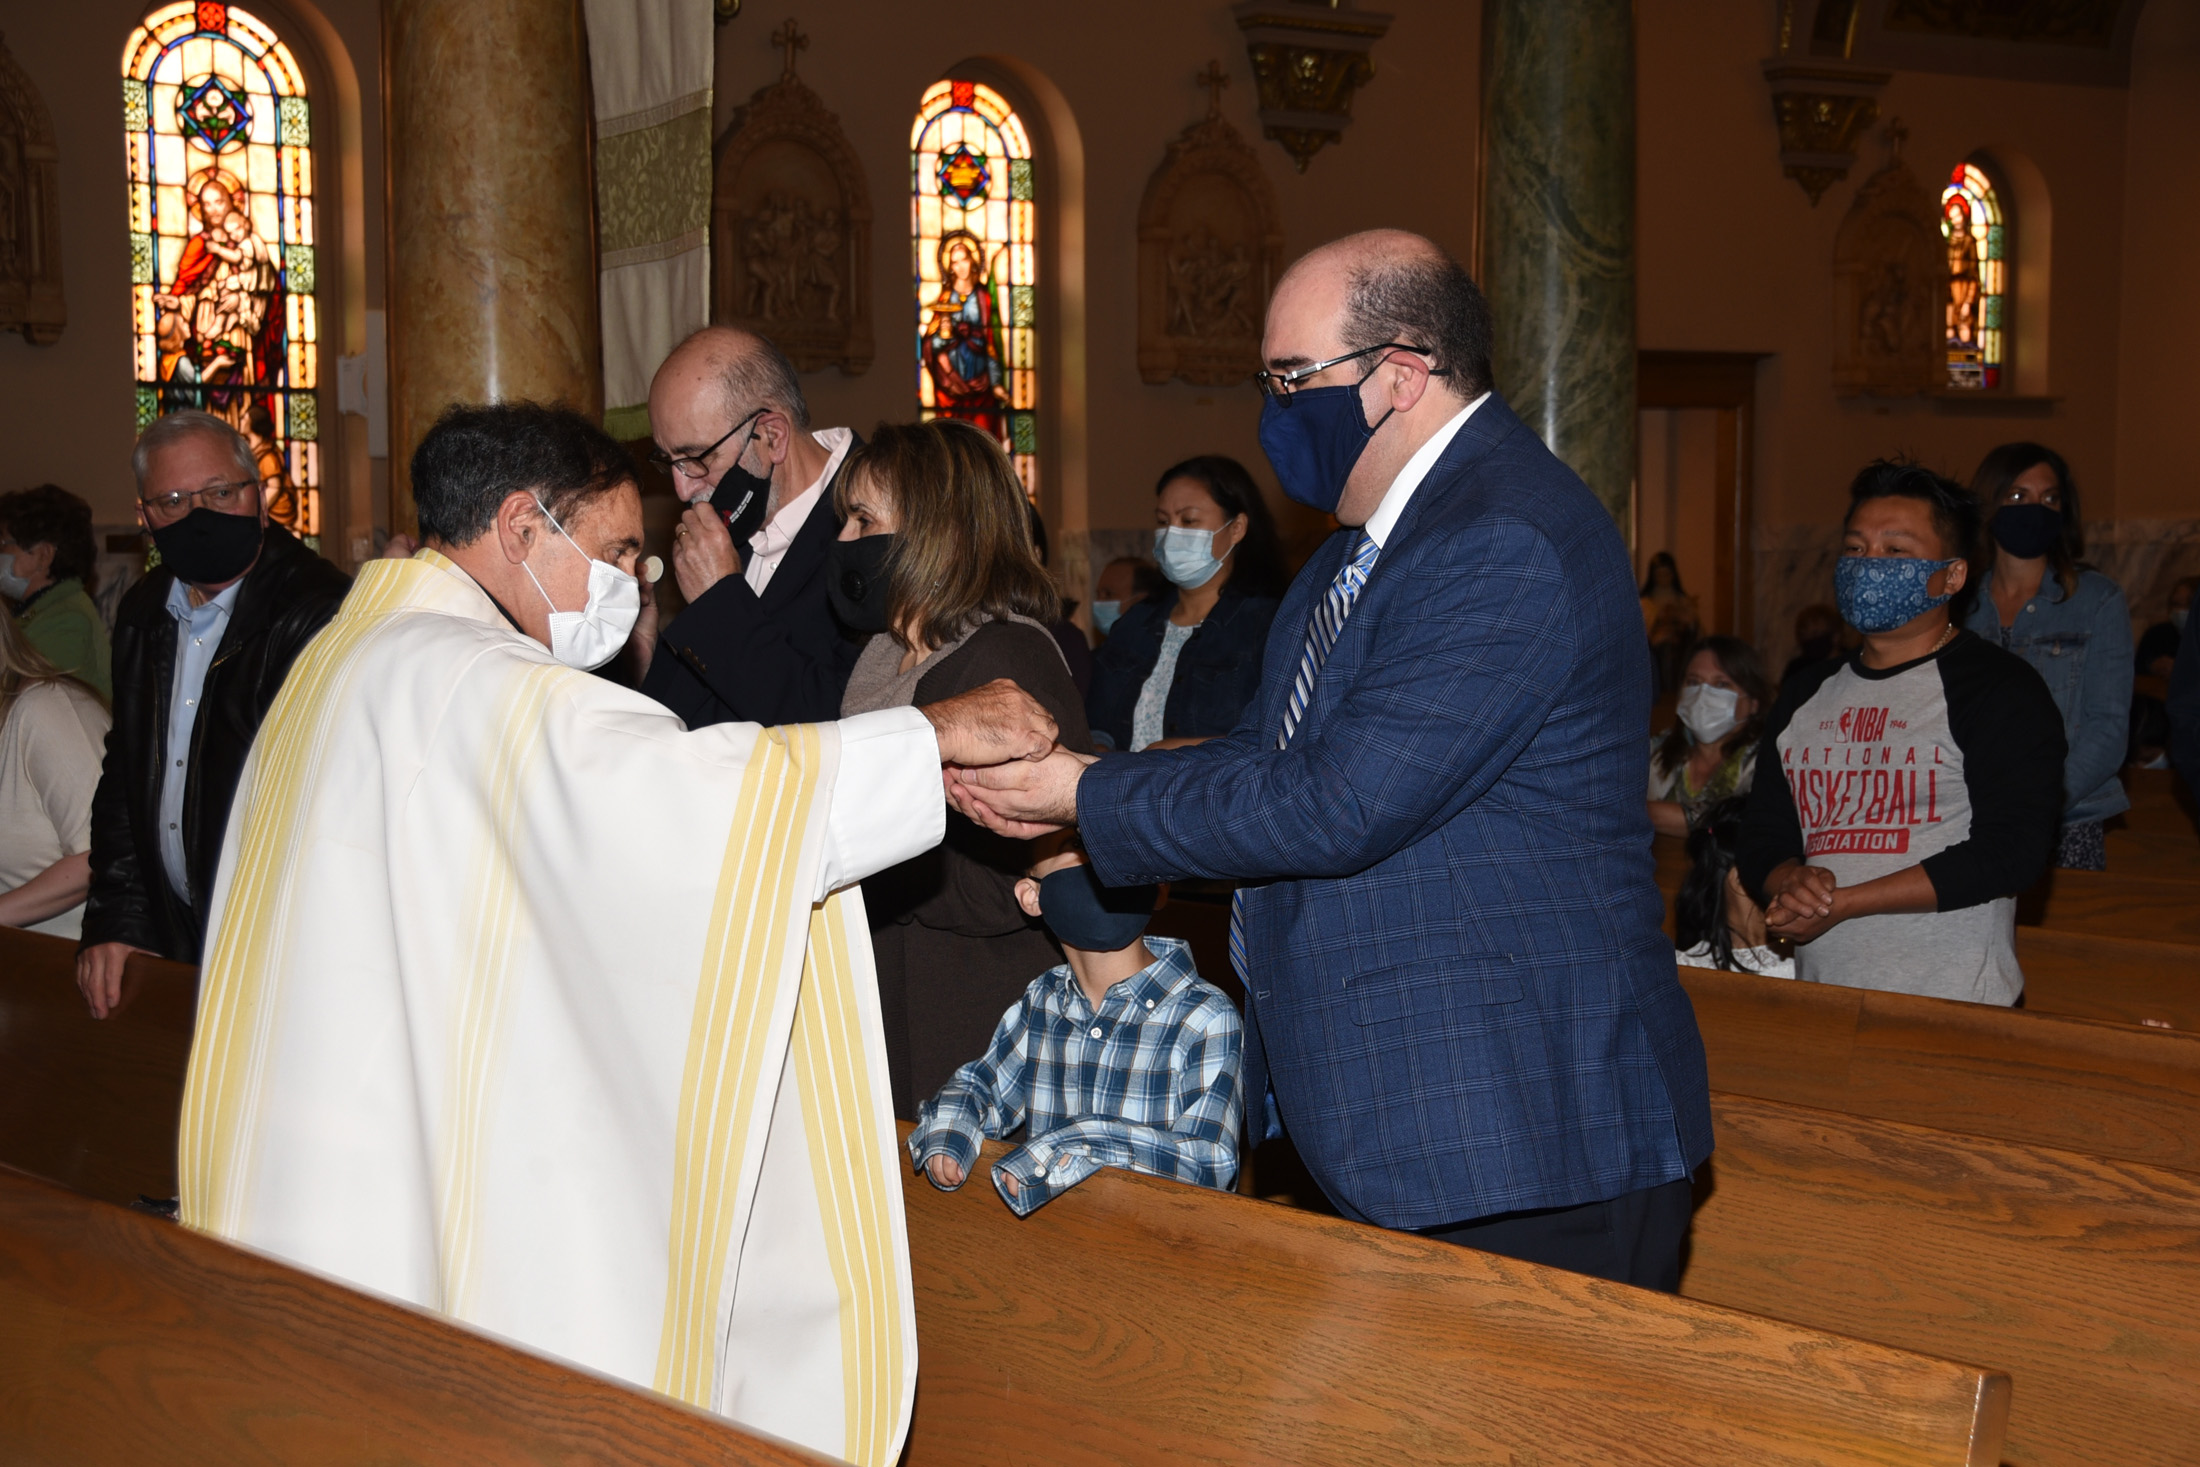 FIRST-COMMUNION-MAY-2-2021-1001001114